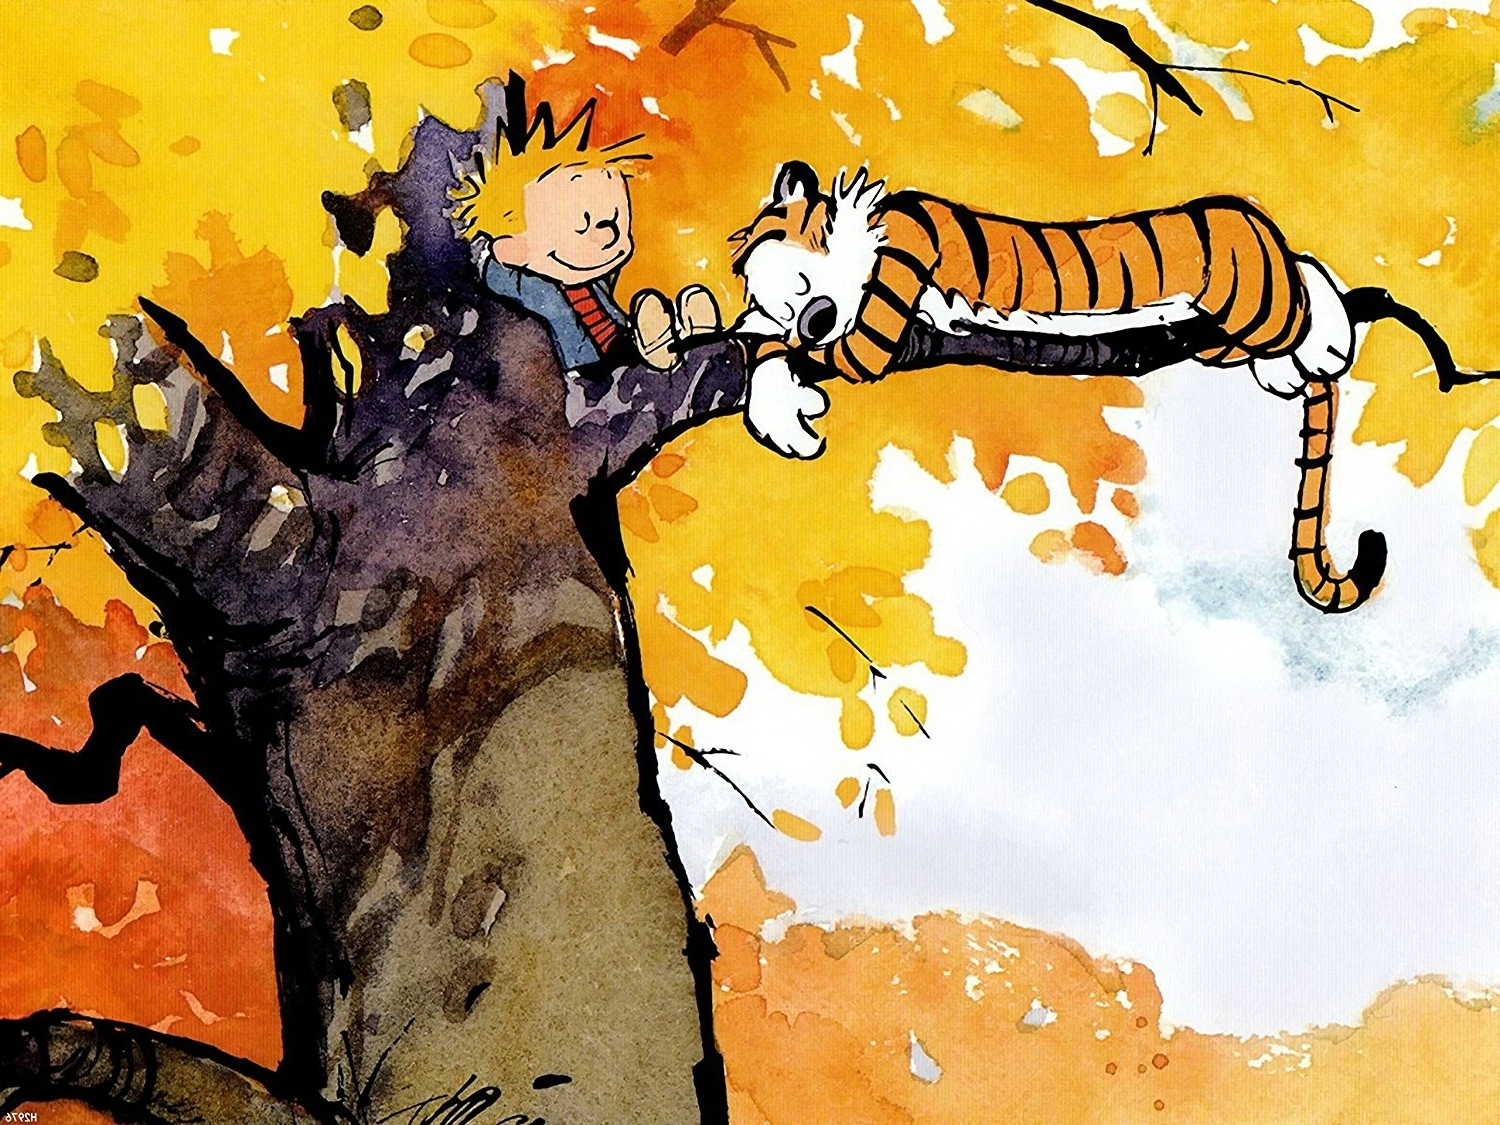 Amazon: Xh2976 Calvin And Hobbes On The Tree Huge Giant Wall For Widely Used Calvin And Hobbes Wall Art (View 5 of 15)